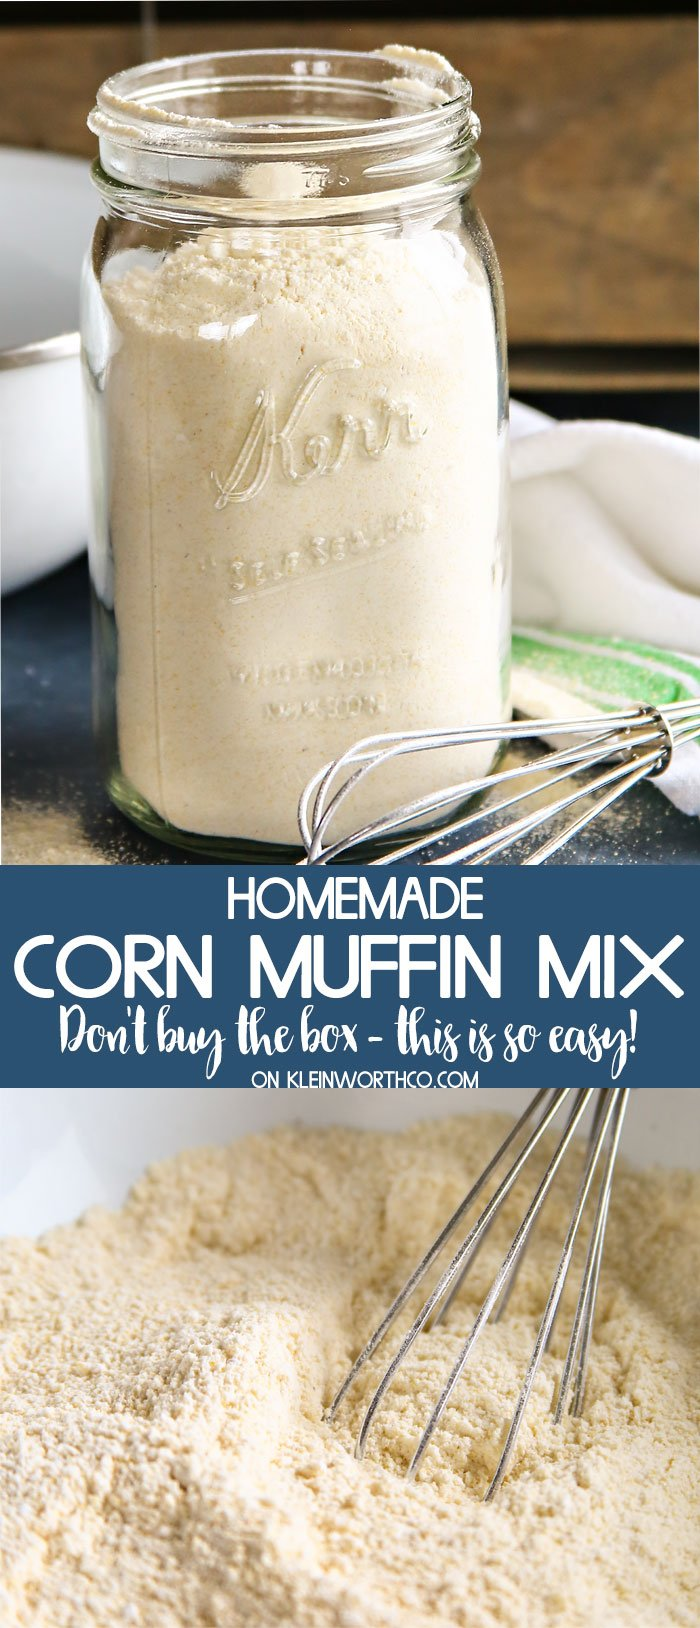 Homemade Corn Muffin Mix